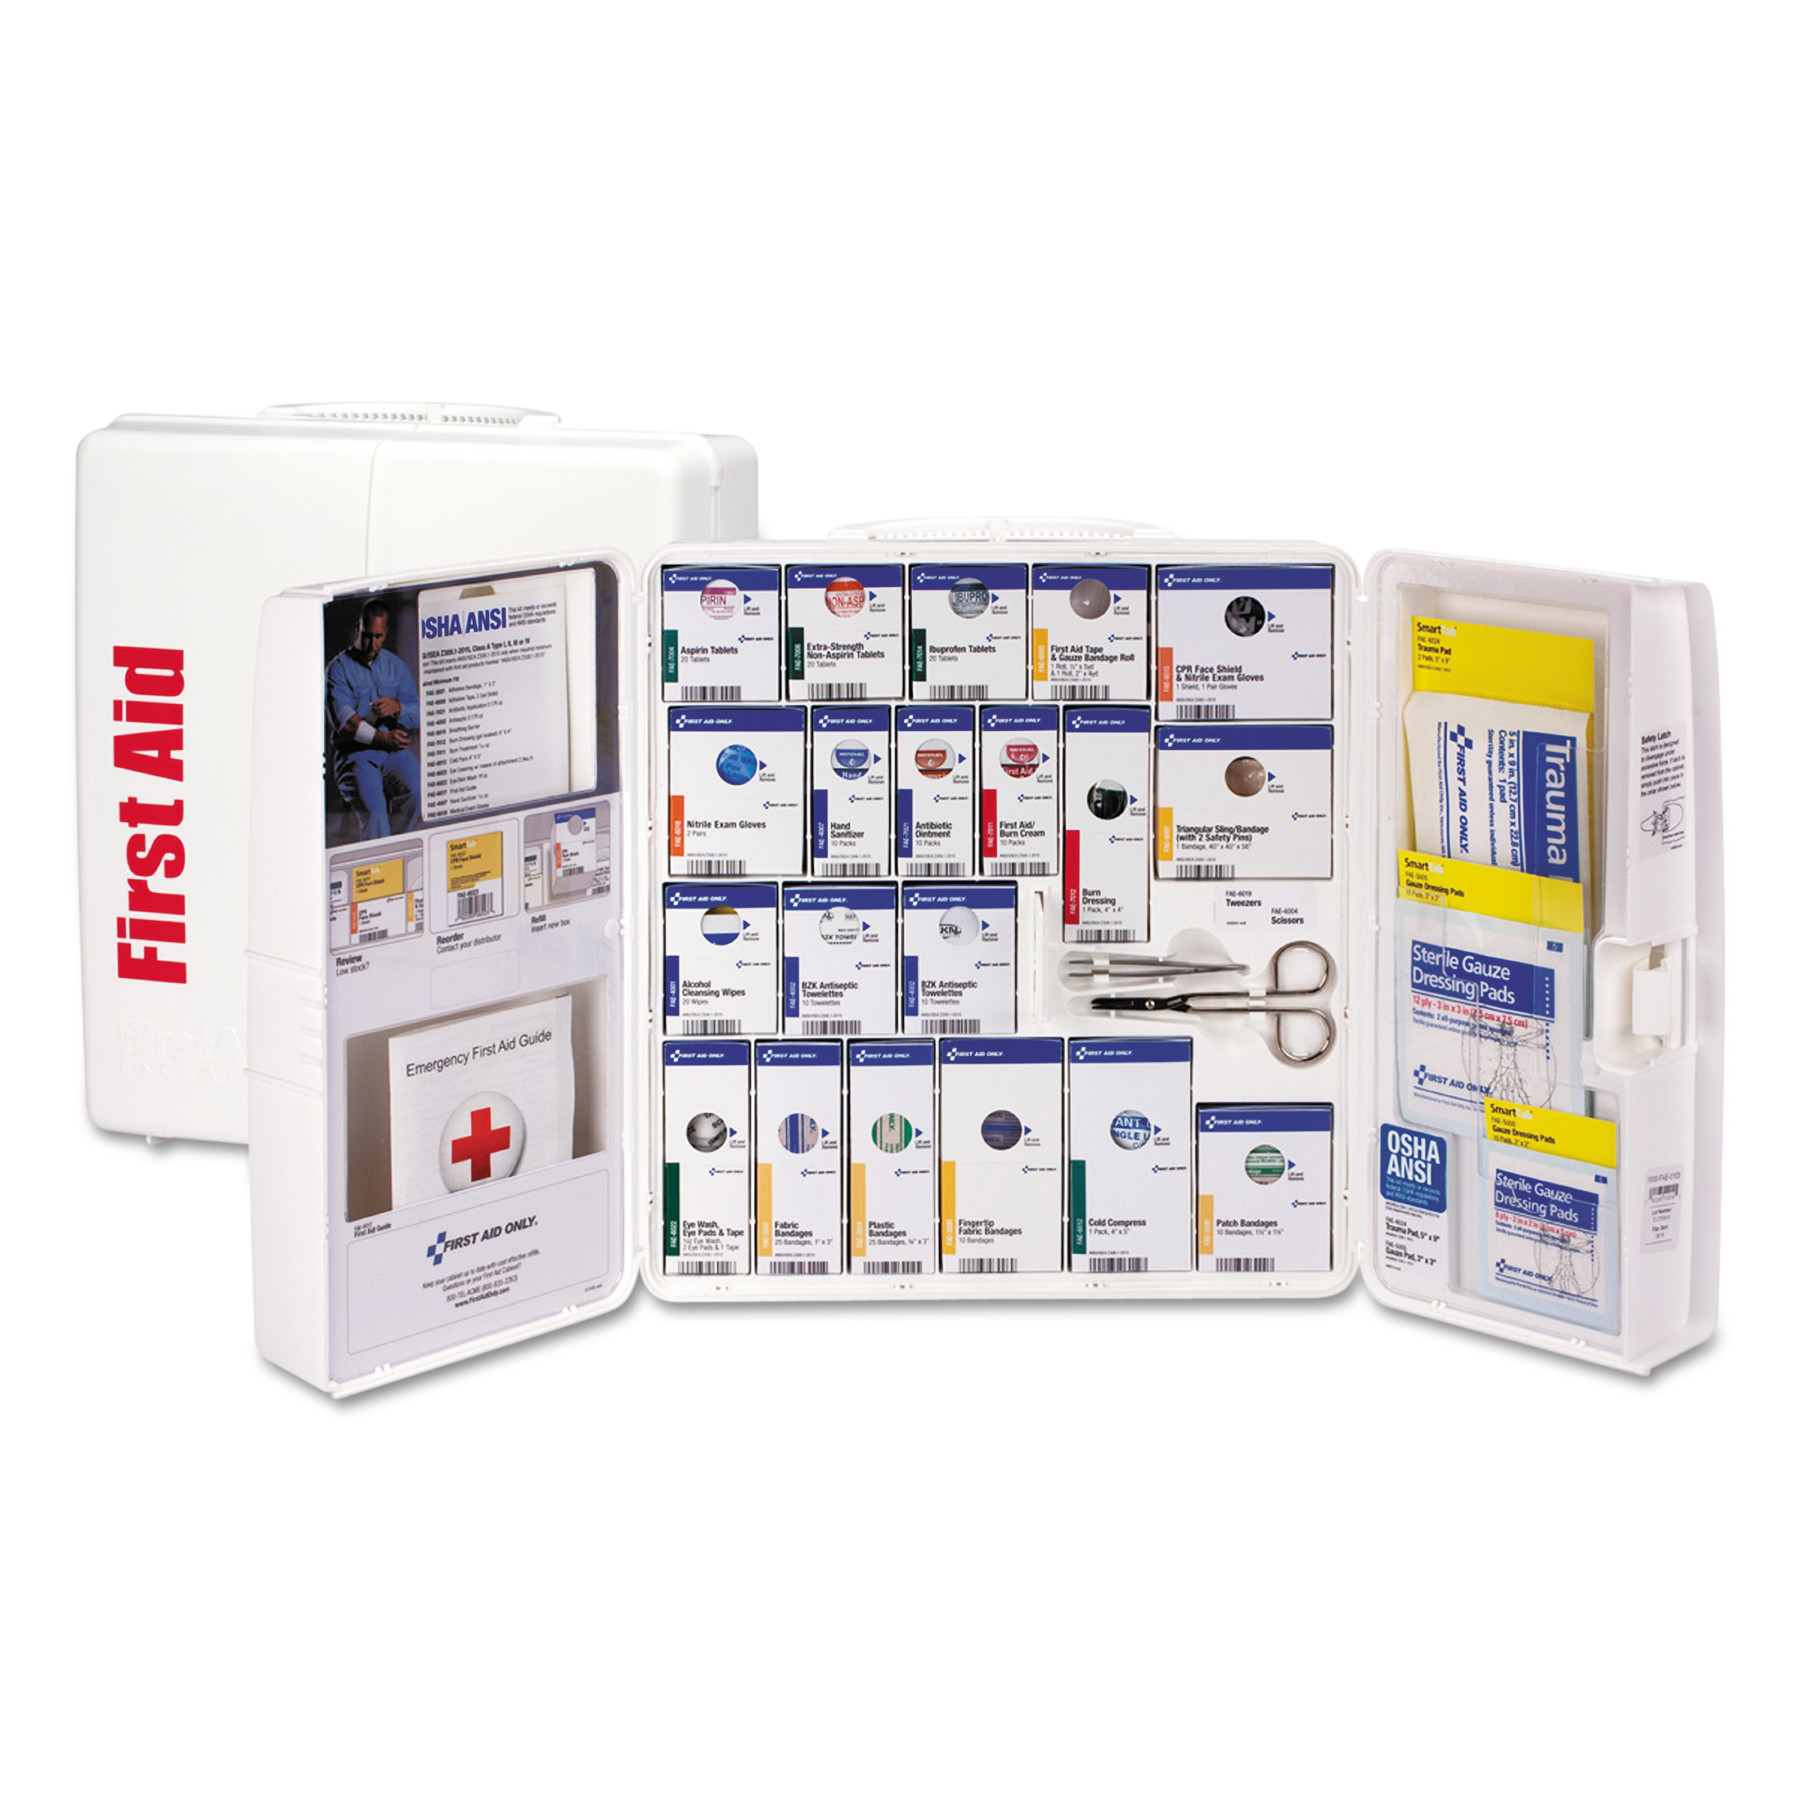 First Aid Only ANSI 2015 SmartCompliance First Aid Station Class A+, 50 People, 241 Pieces